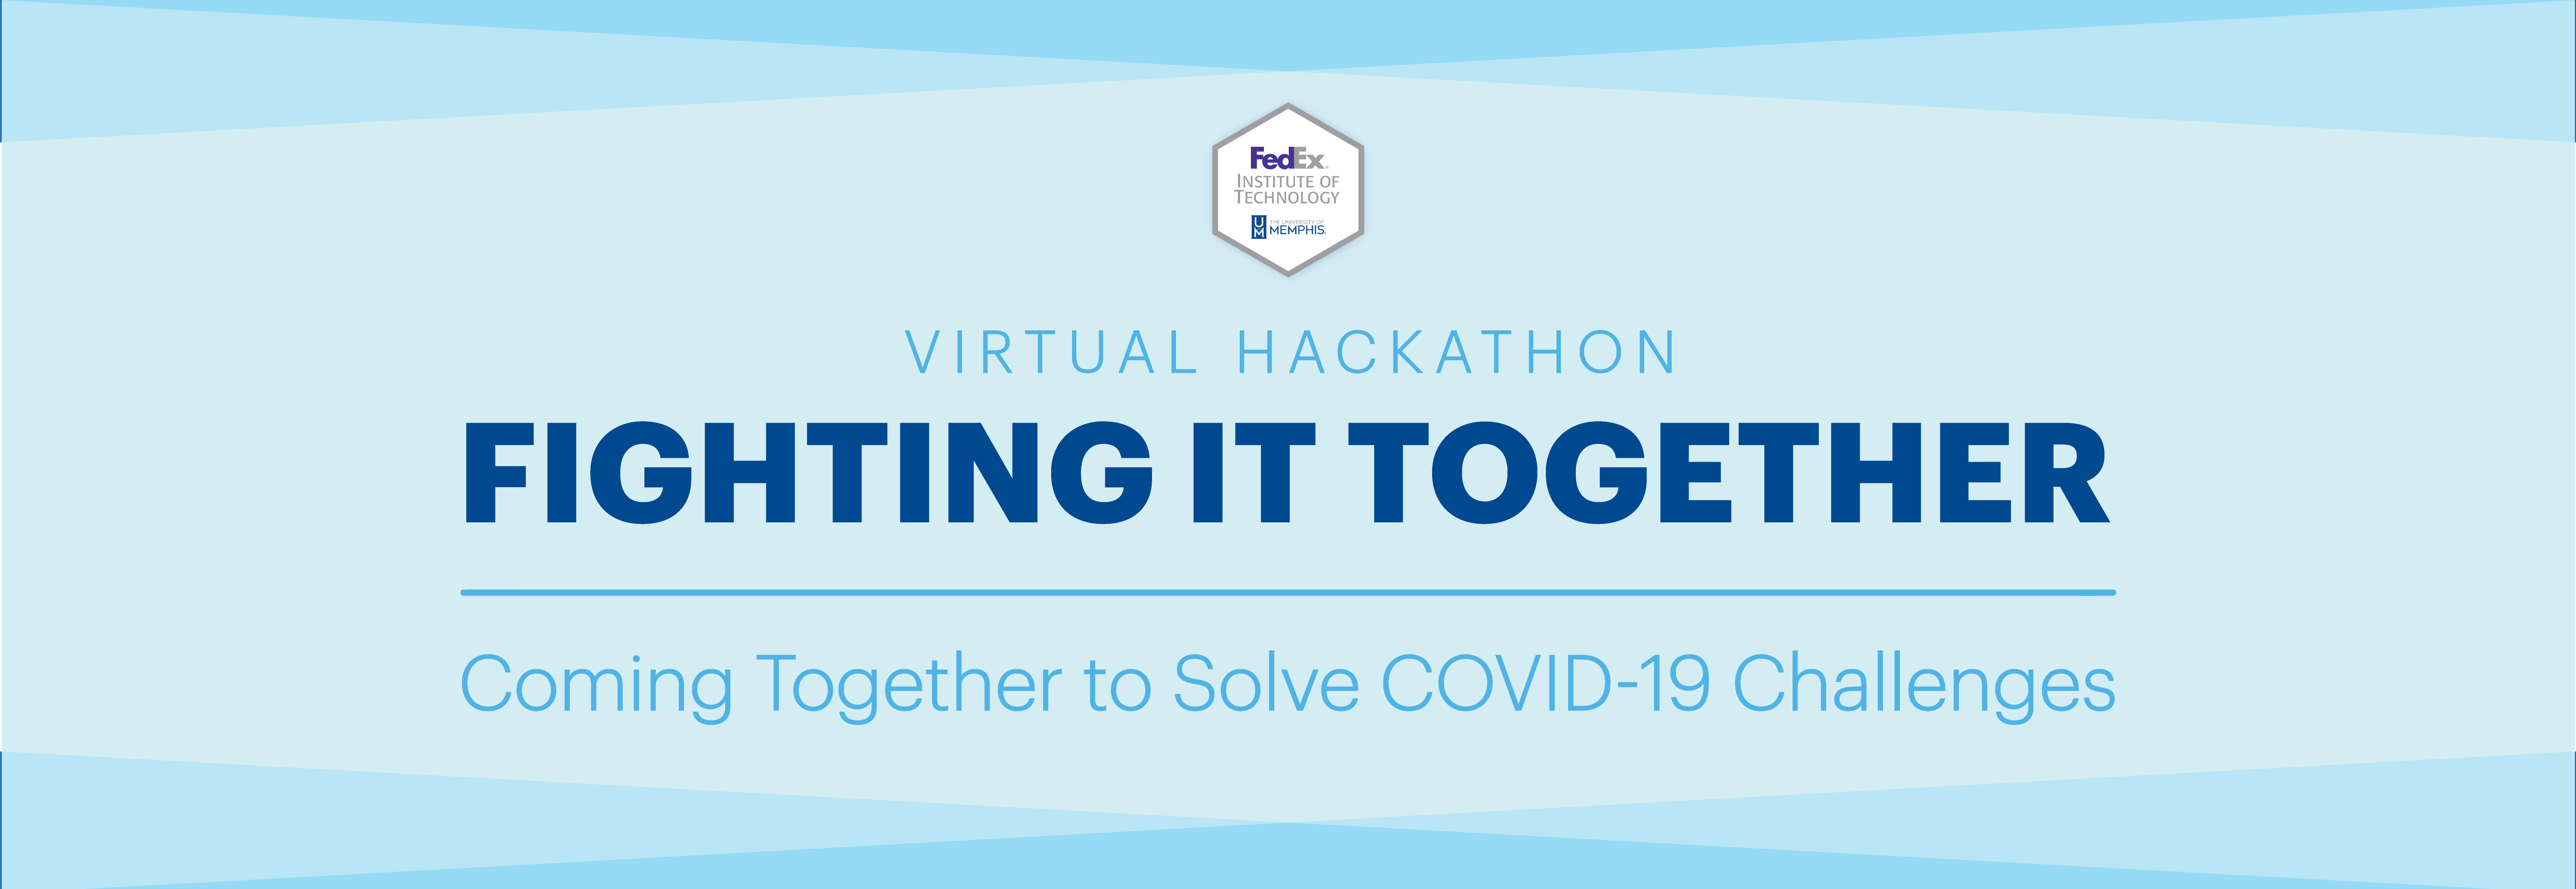 Virtual Hackathon | Fighting It Together | This is your opportunity to come together (virtually) to identify, support, and bring innovative solutions to some of the most pressing challenges currently affecting us all.